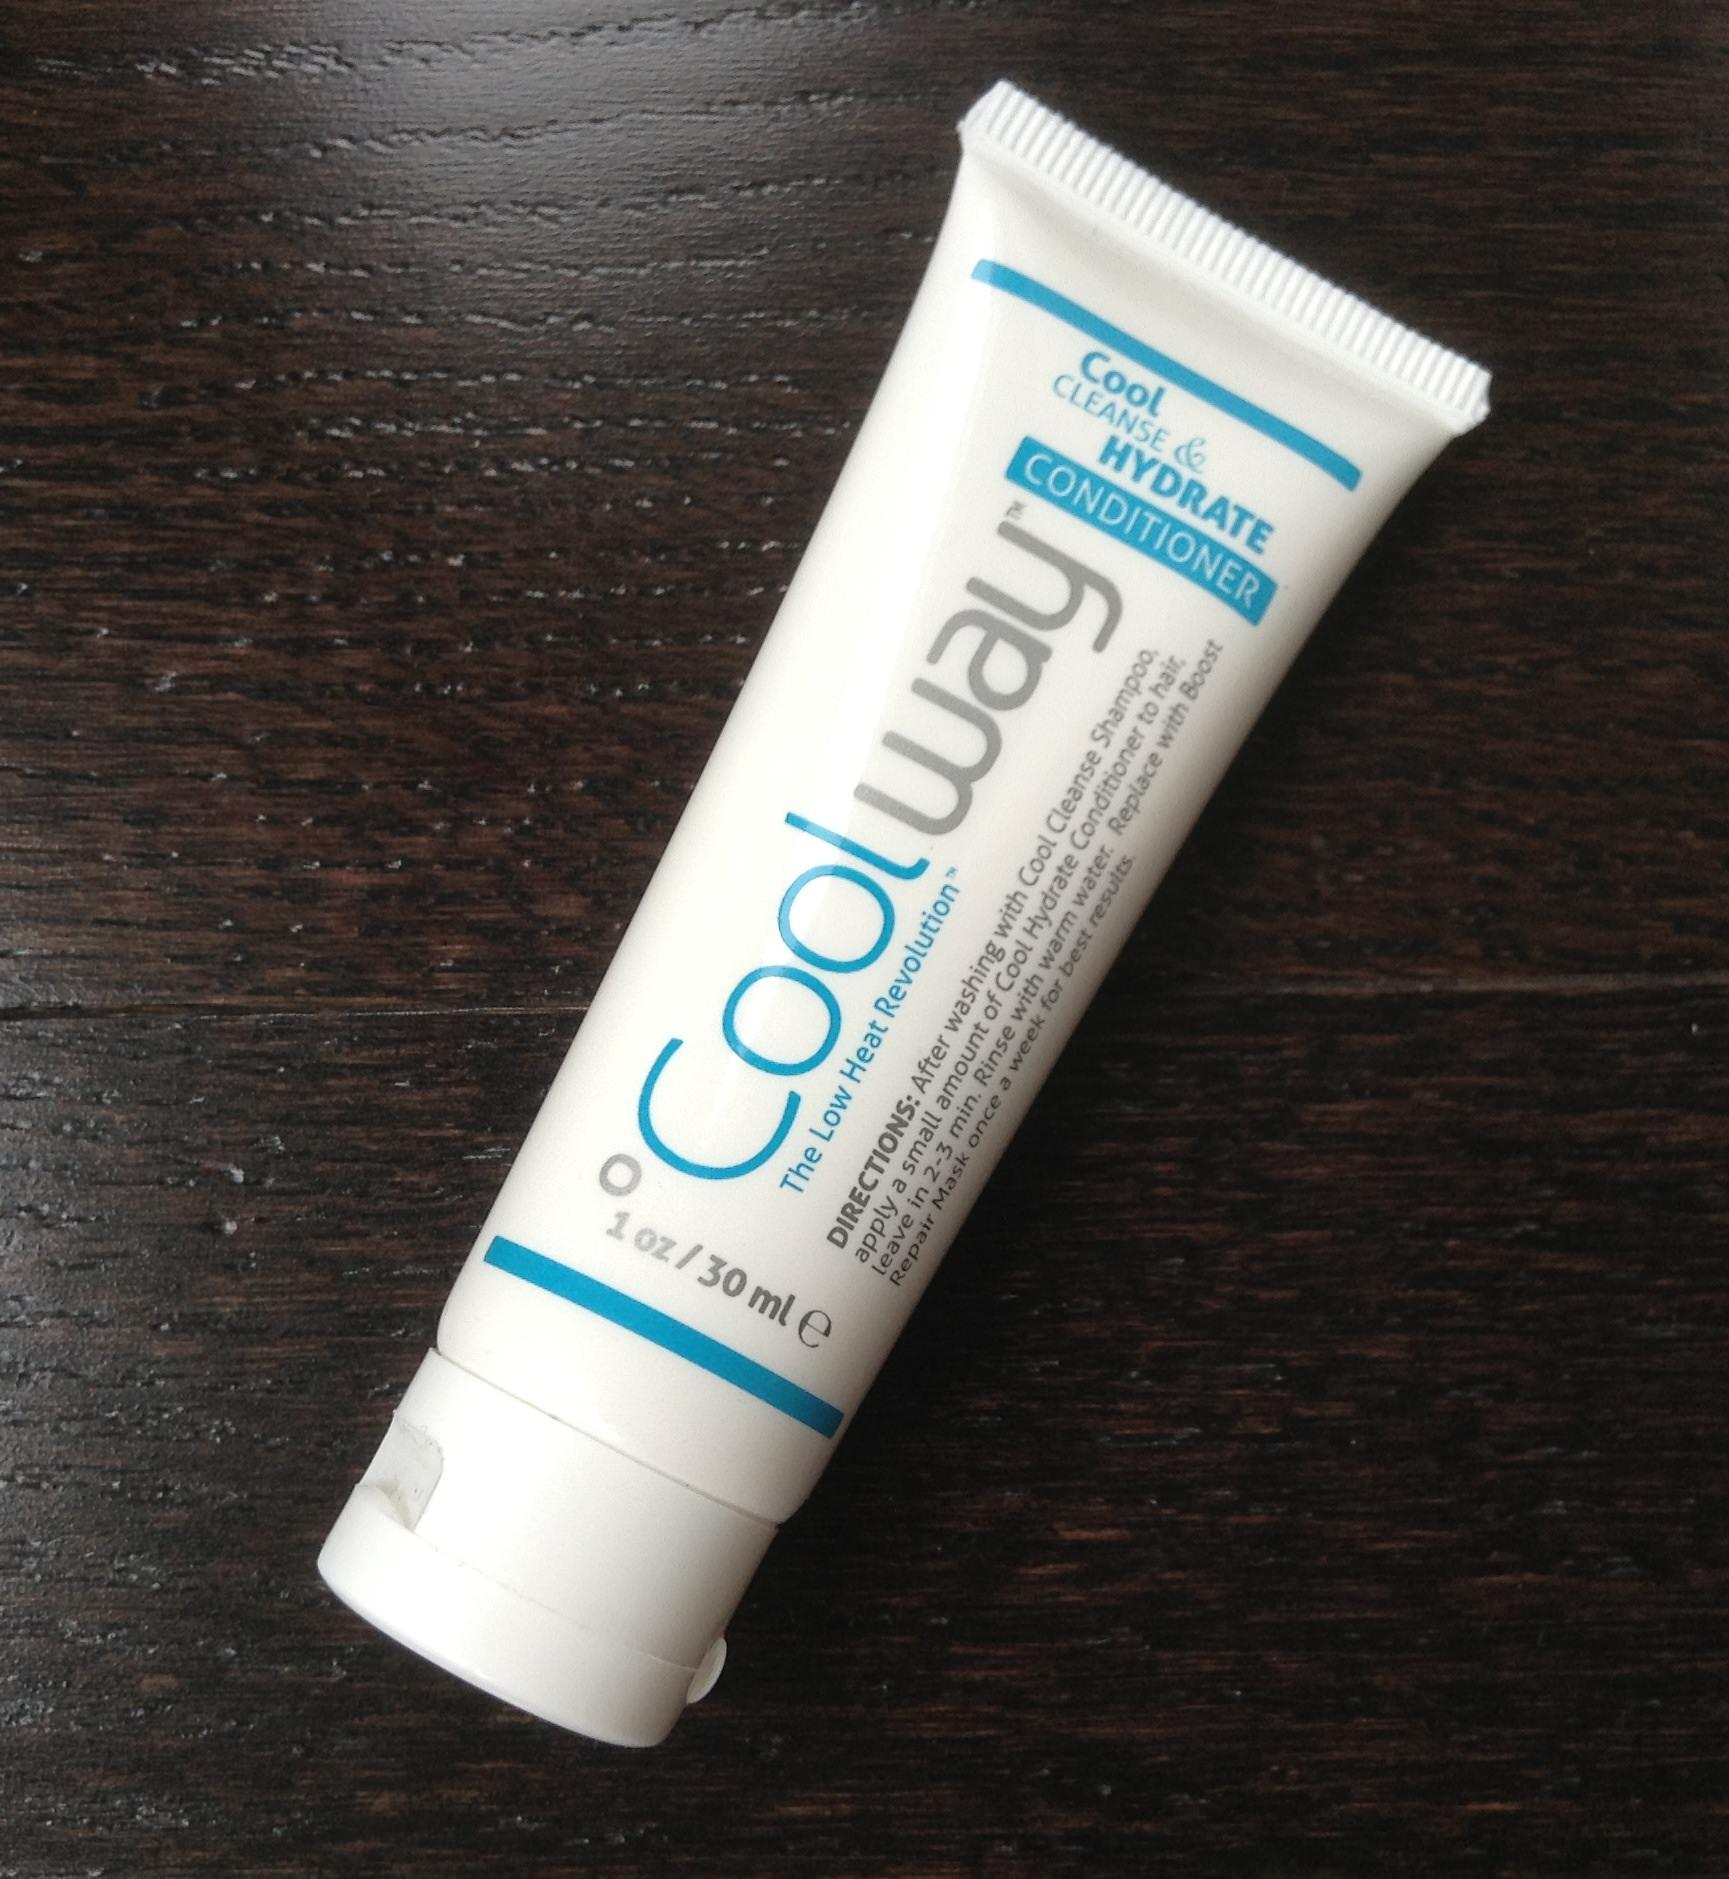 Coolway Cool Hydrate Conditioner